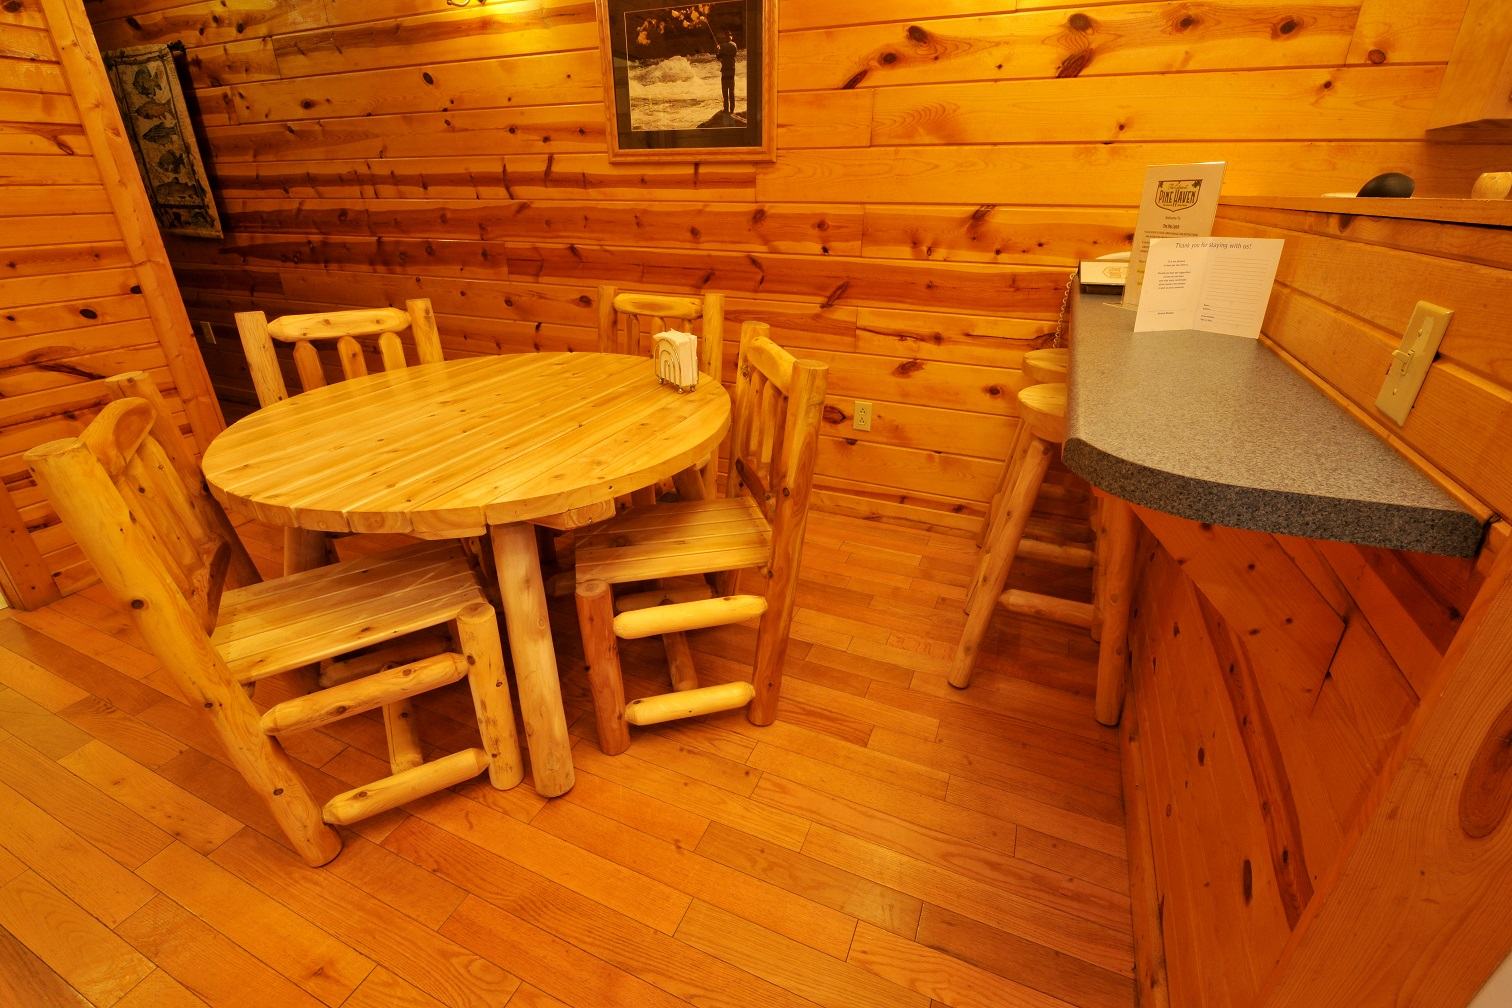 Big Catch - 1BR - The Cabins at Pine Haven